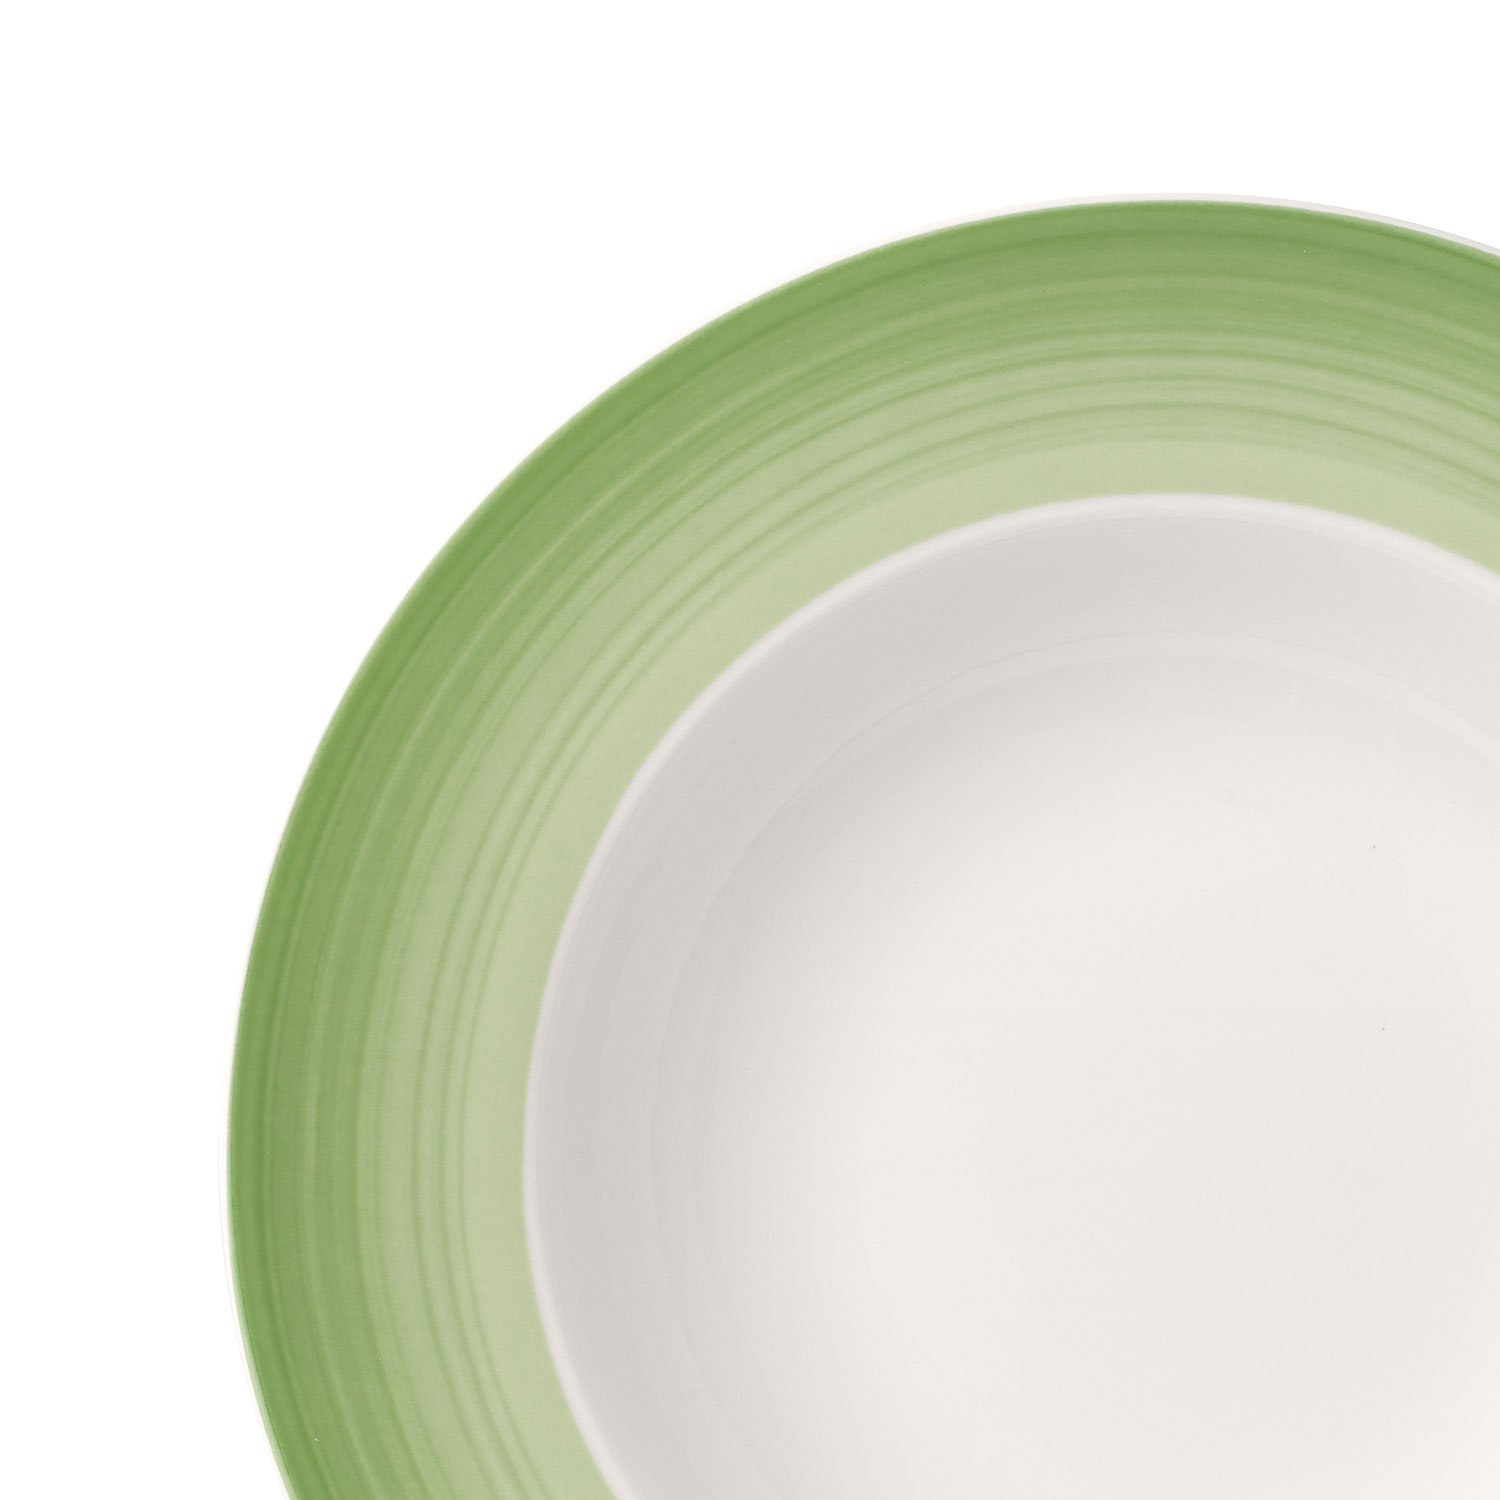 Colorful Life Berry Fantasy Dinner Plate by Villeroy /& Boch 10.5 Inches Dishwasher and Microwave Safe Made in Germany Premium Porcelain